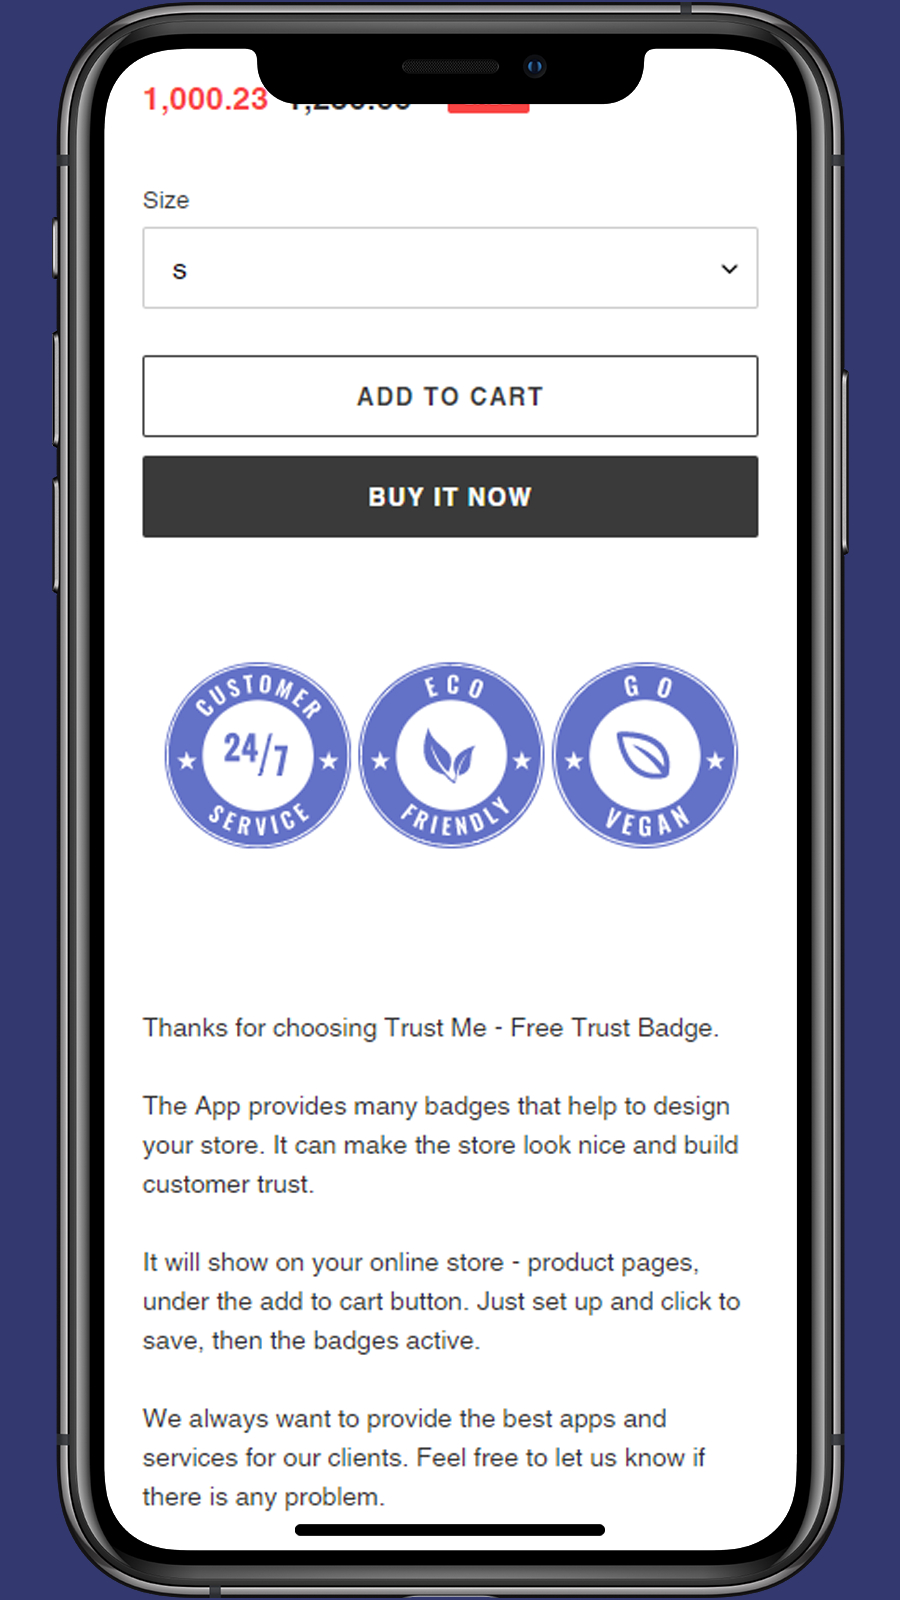 New special badges_Trust Me - The Trust Badge